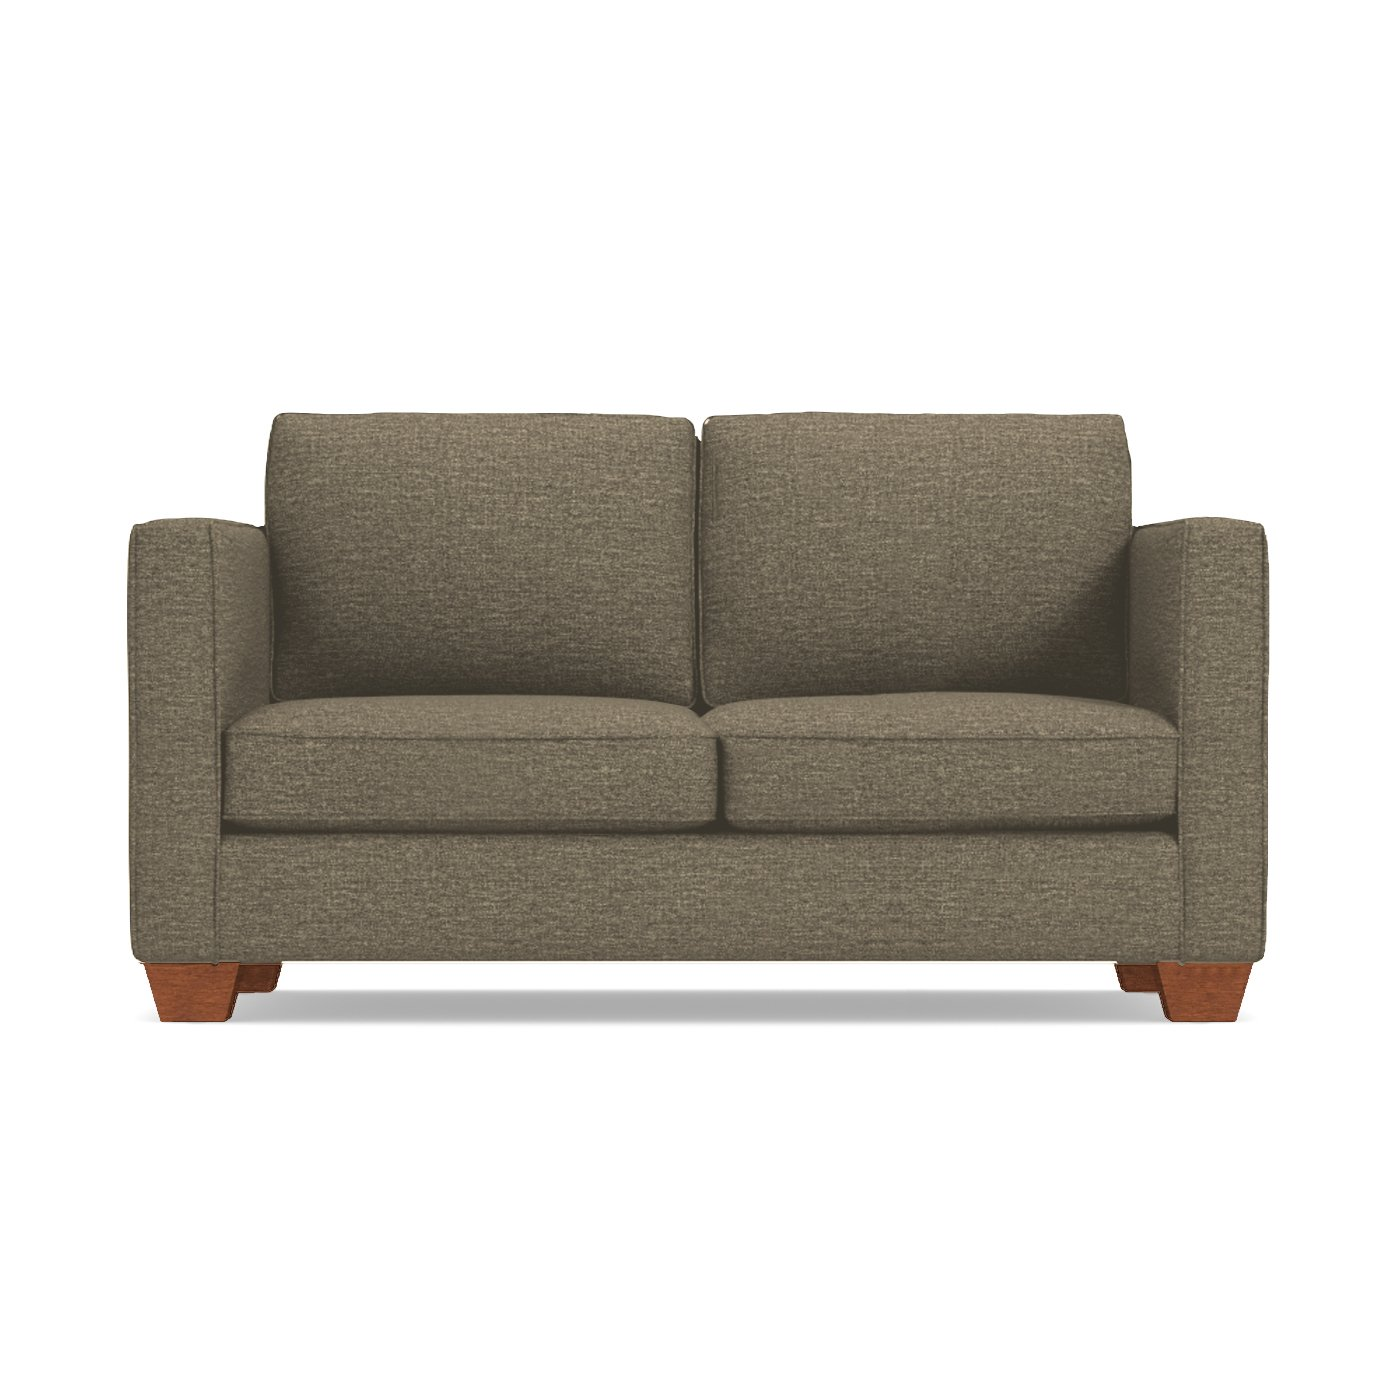 Exceptional Catalina Apartment Size Sofa